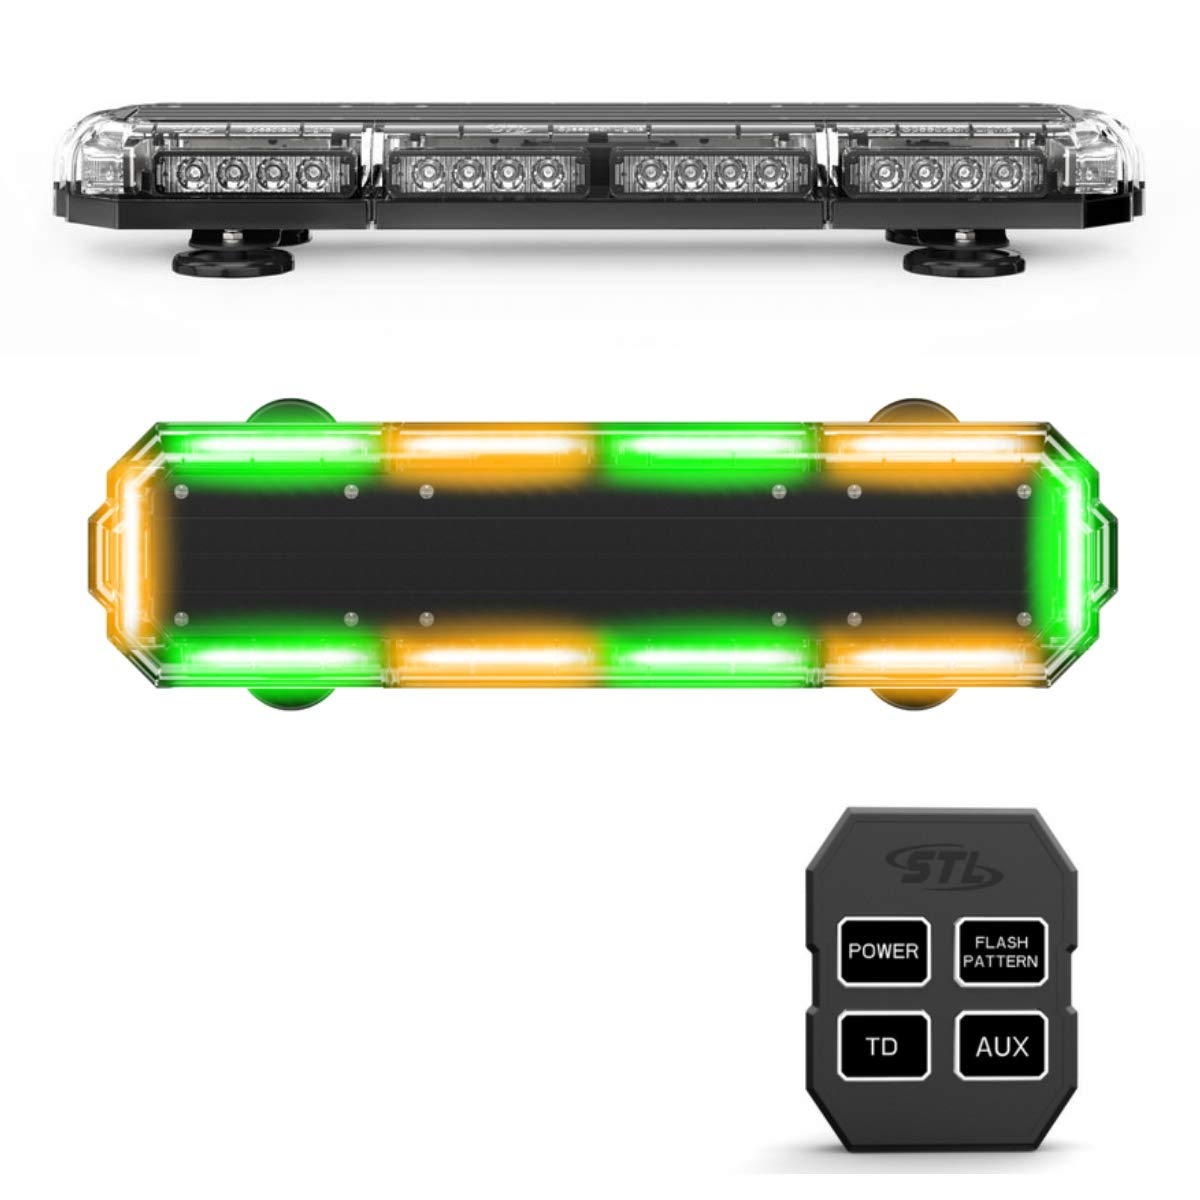 FOXCID 12 36 LED 18 Watts Emergency Hazard Warning Security Roof Top Flash Strobe Mini Light Bar with Magnetic Mount for Plow or Tow Truck Construction Vehicle Green